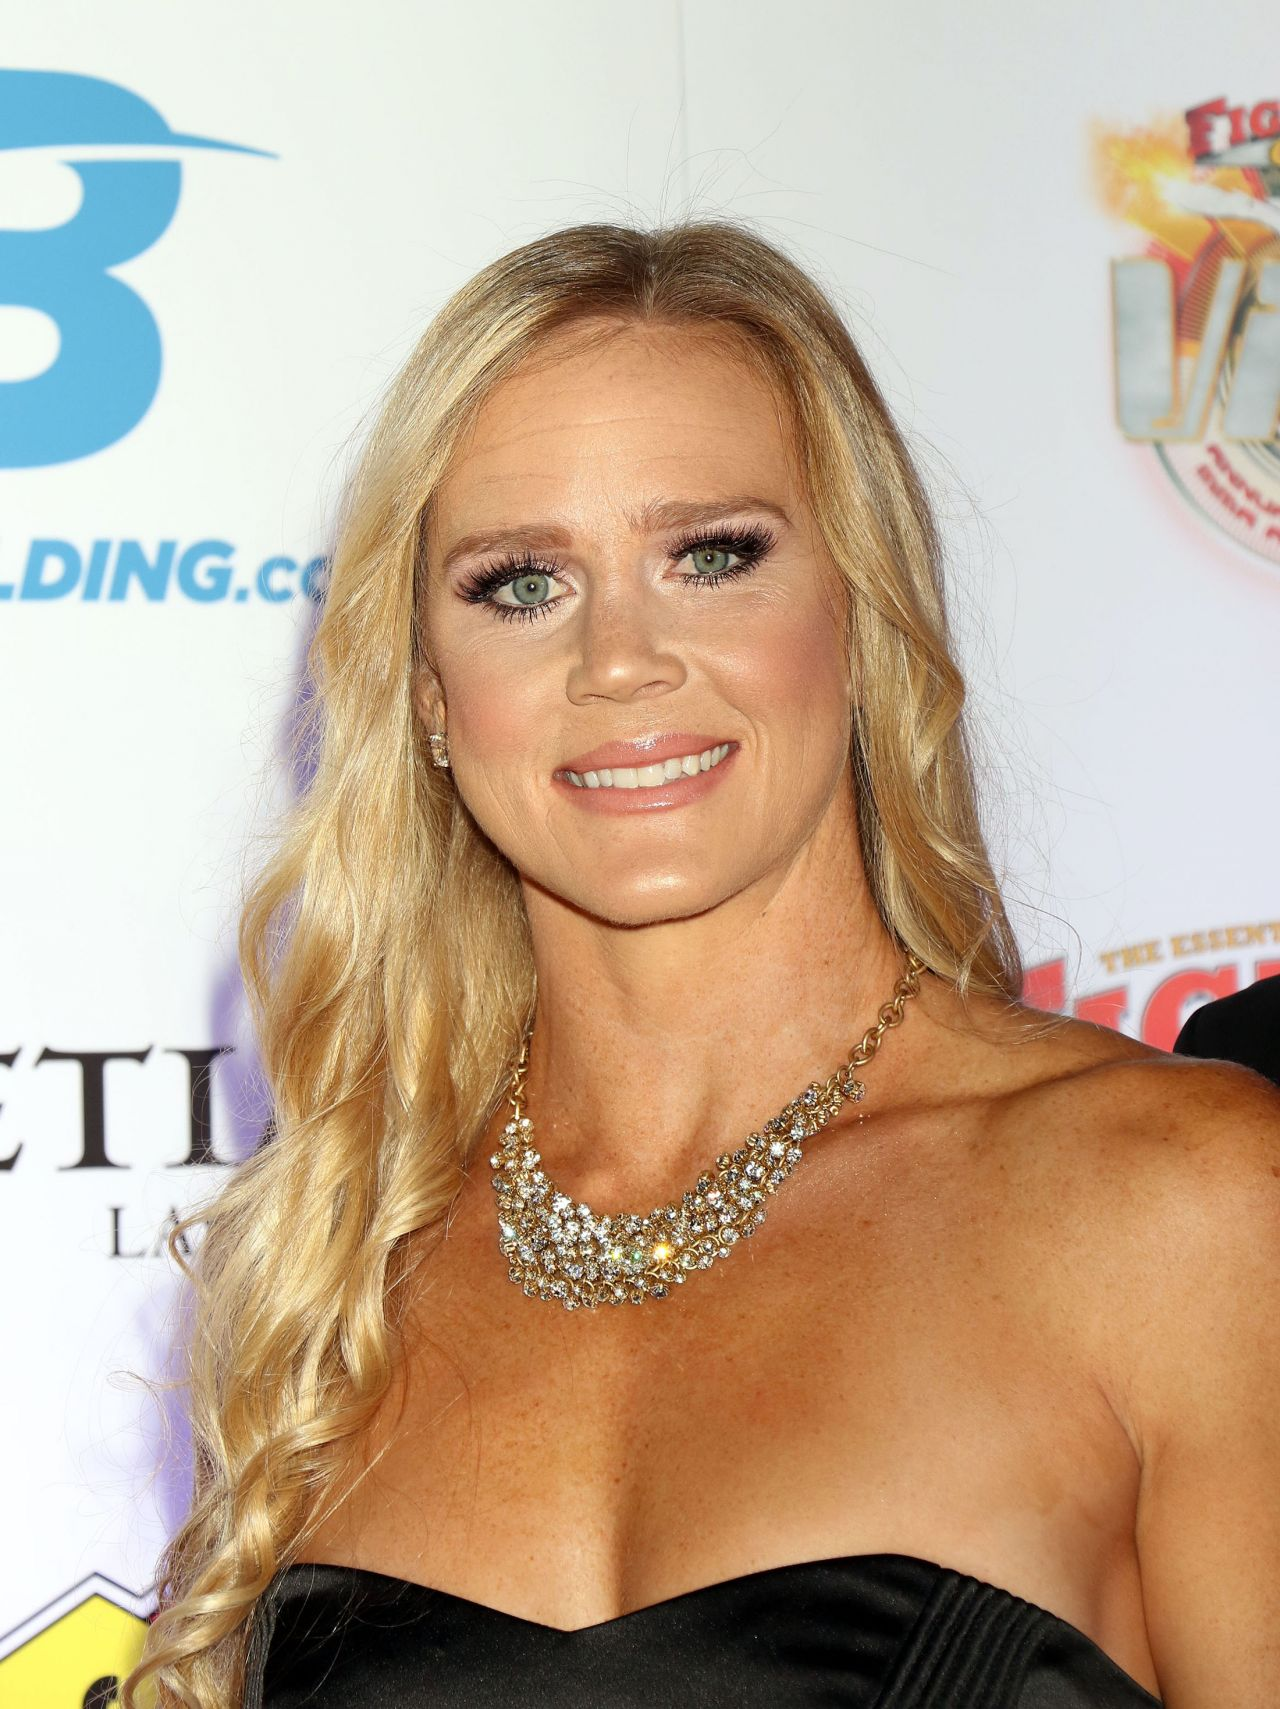 Holly Holm Fighters Only Mma Awards Las Vegas